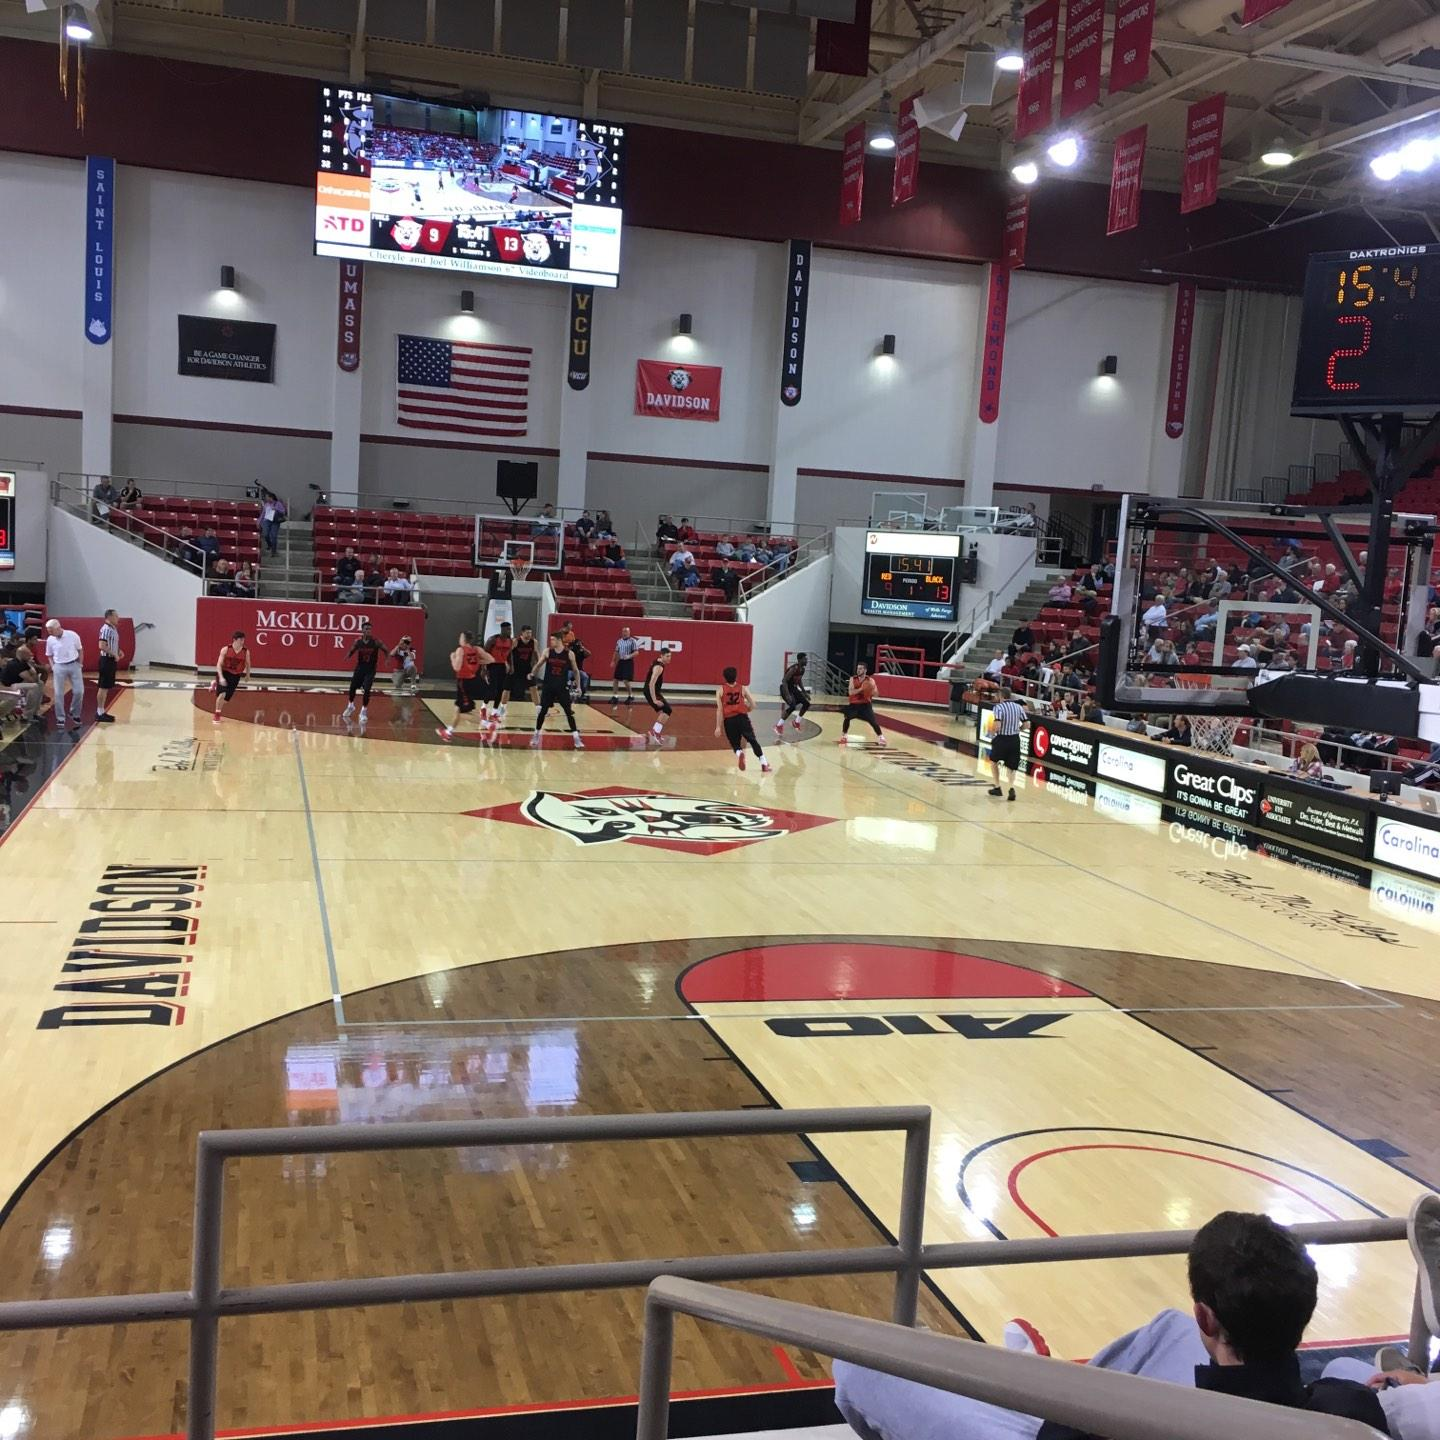 John M. Belk Arena Section 2 Row F Seat 1